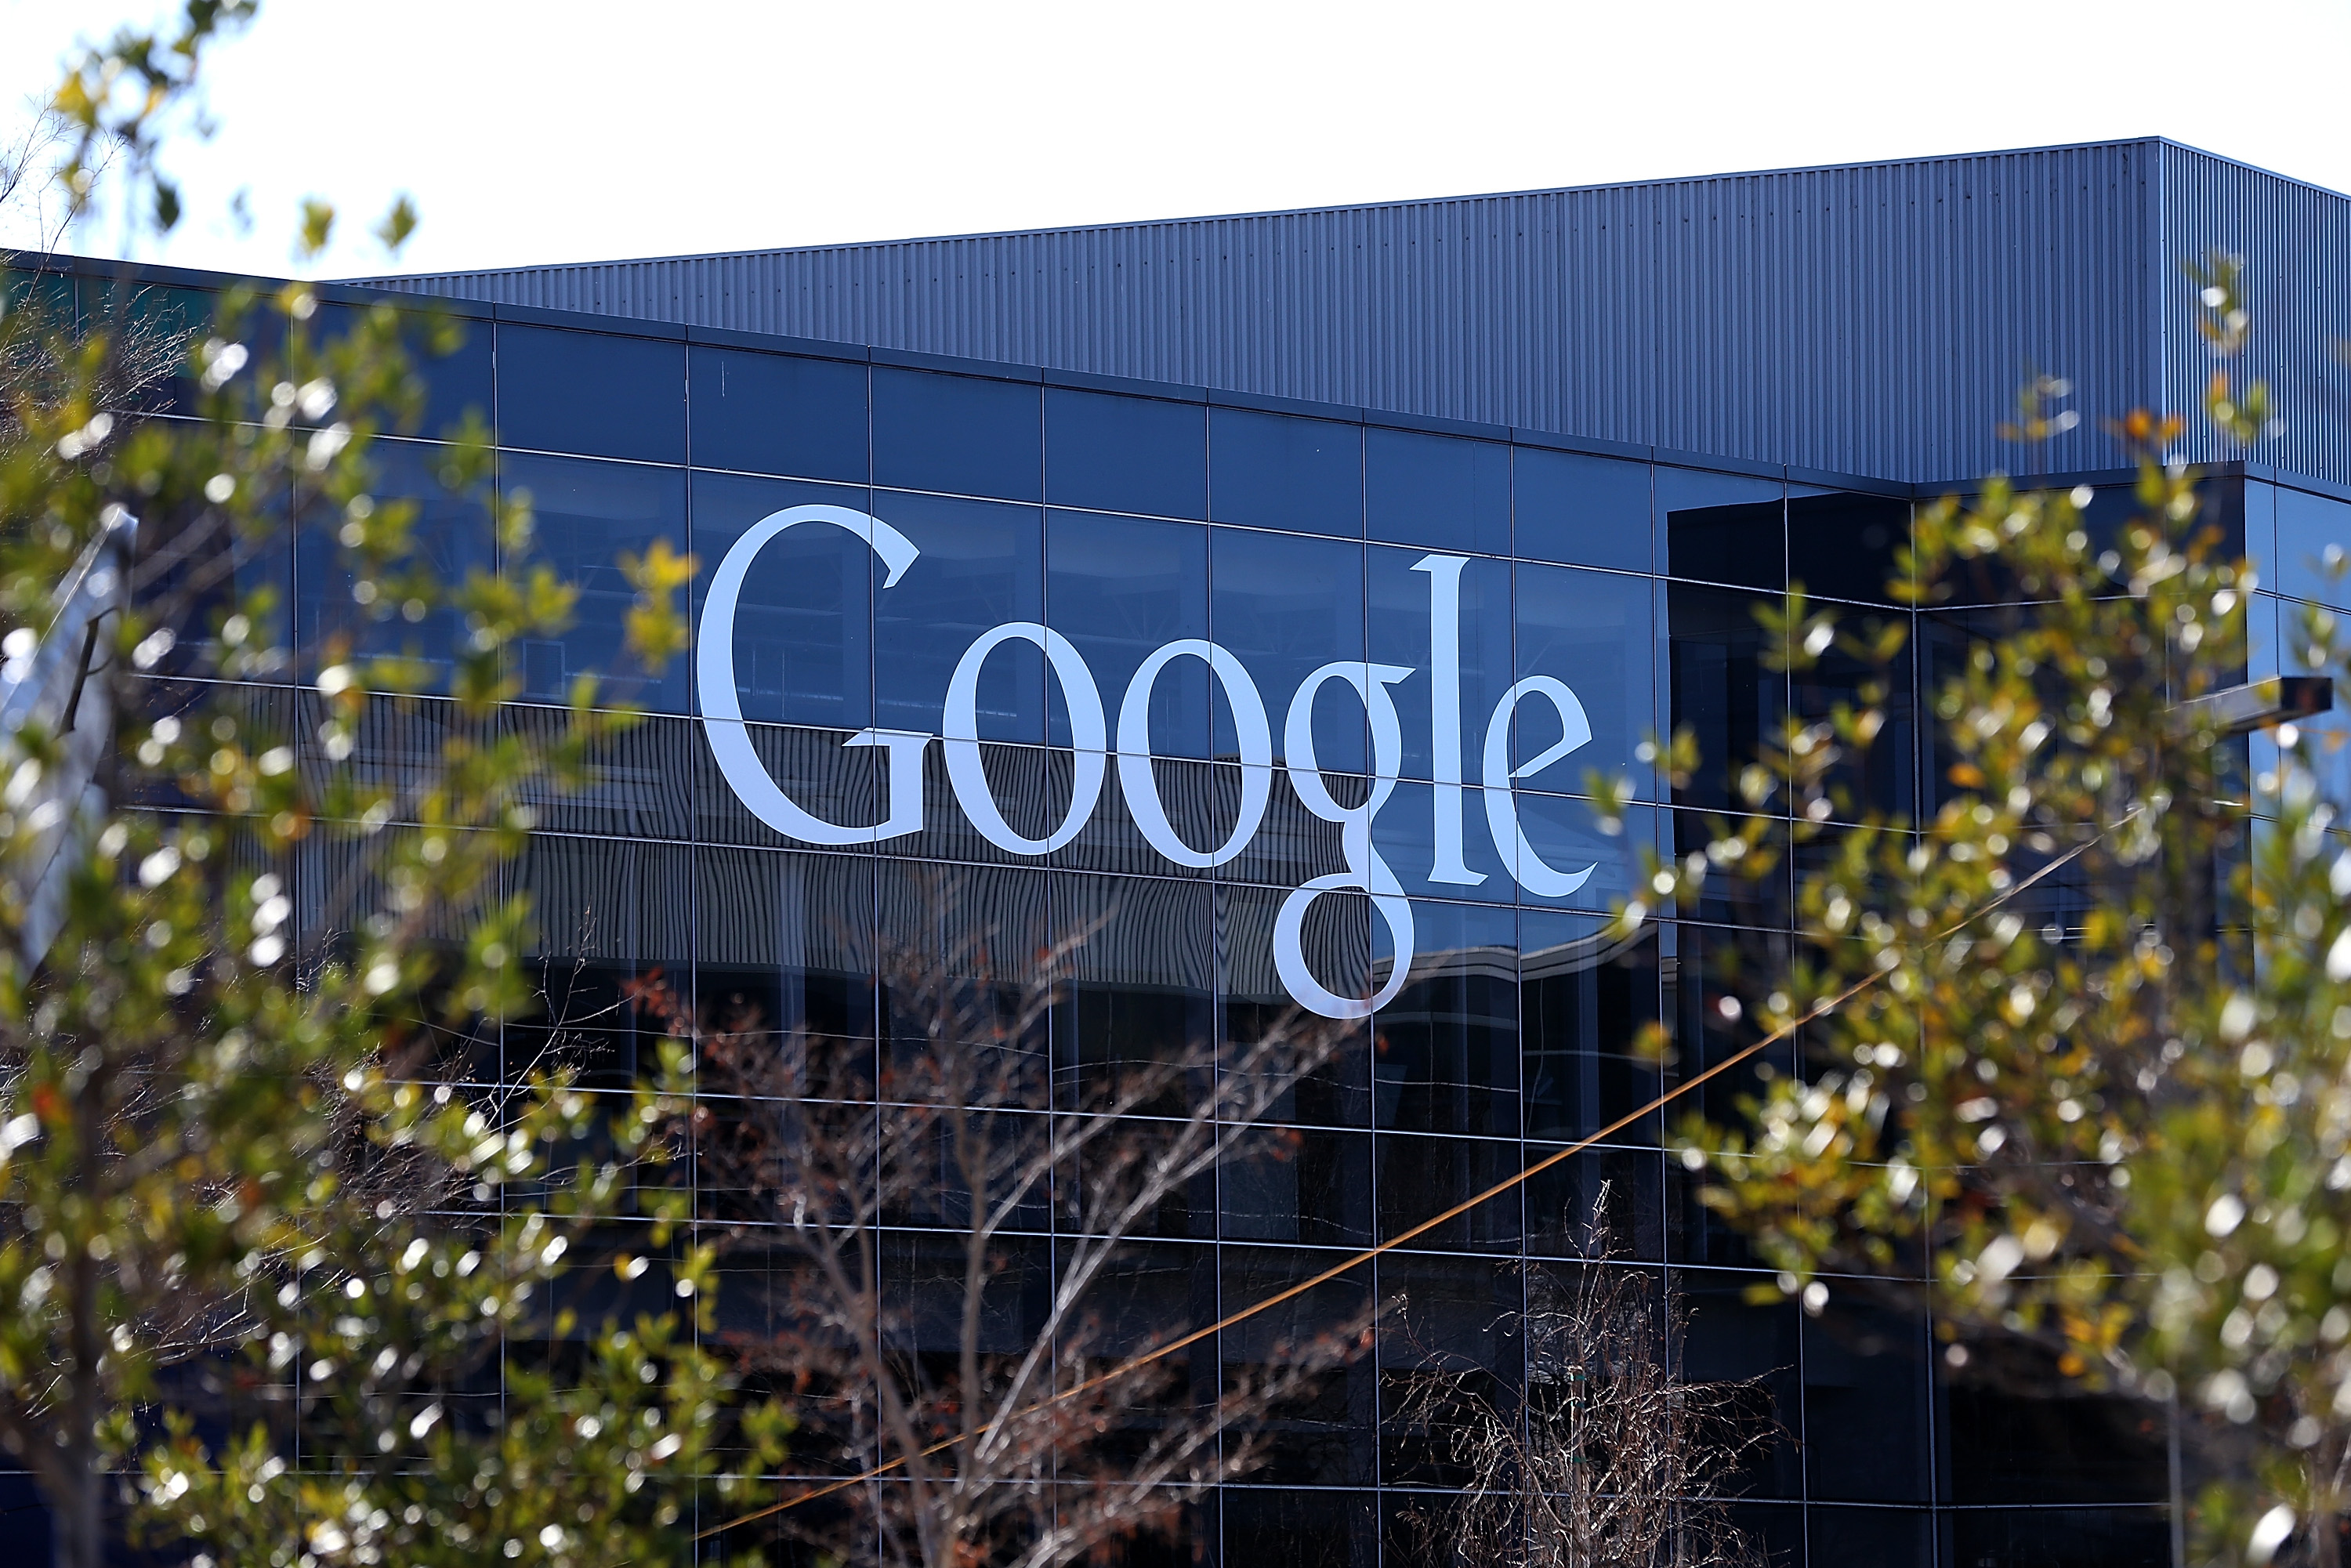 Google headquarters in Mountain View, Calif. on Jan. 30, 2014.